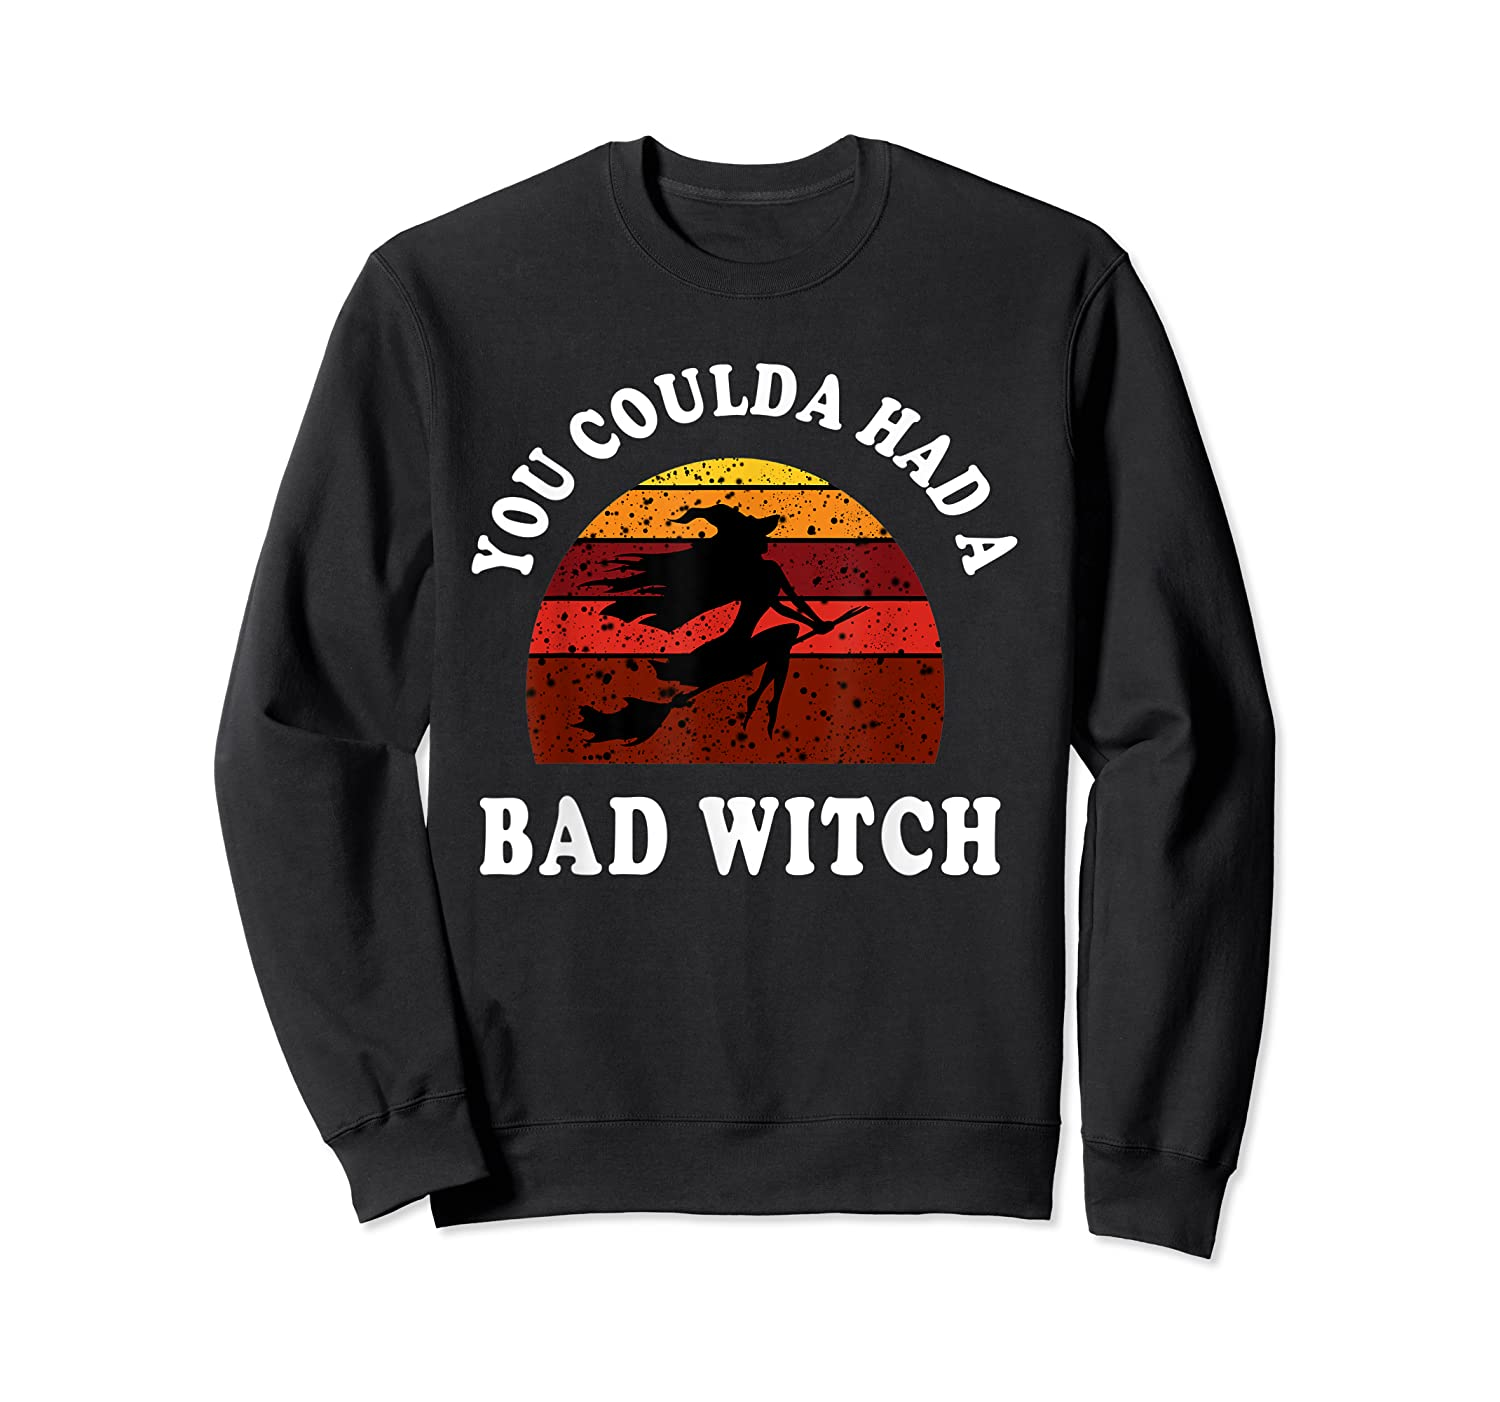 You Coulda Had A Bad Witch Vintage Custom Gift Halloween Shirts Crewneck Sweater